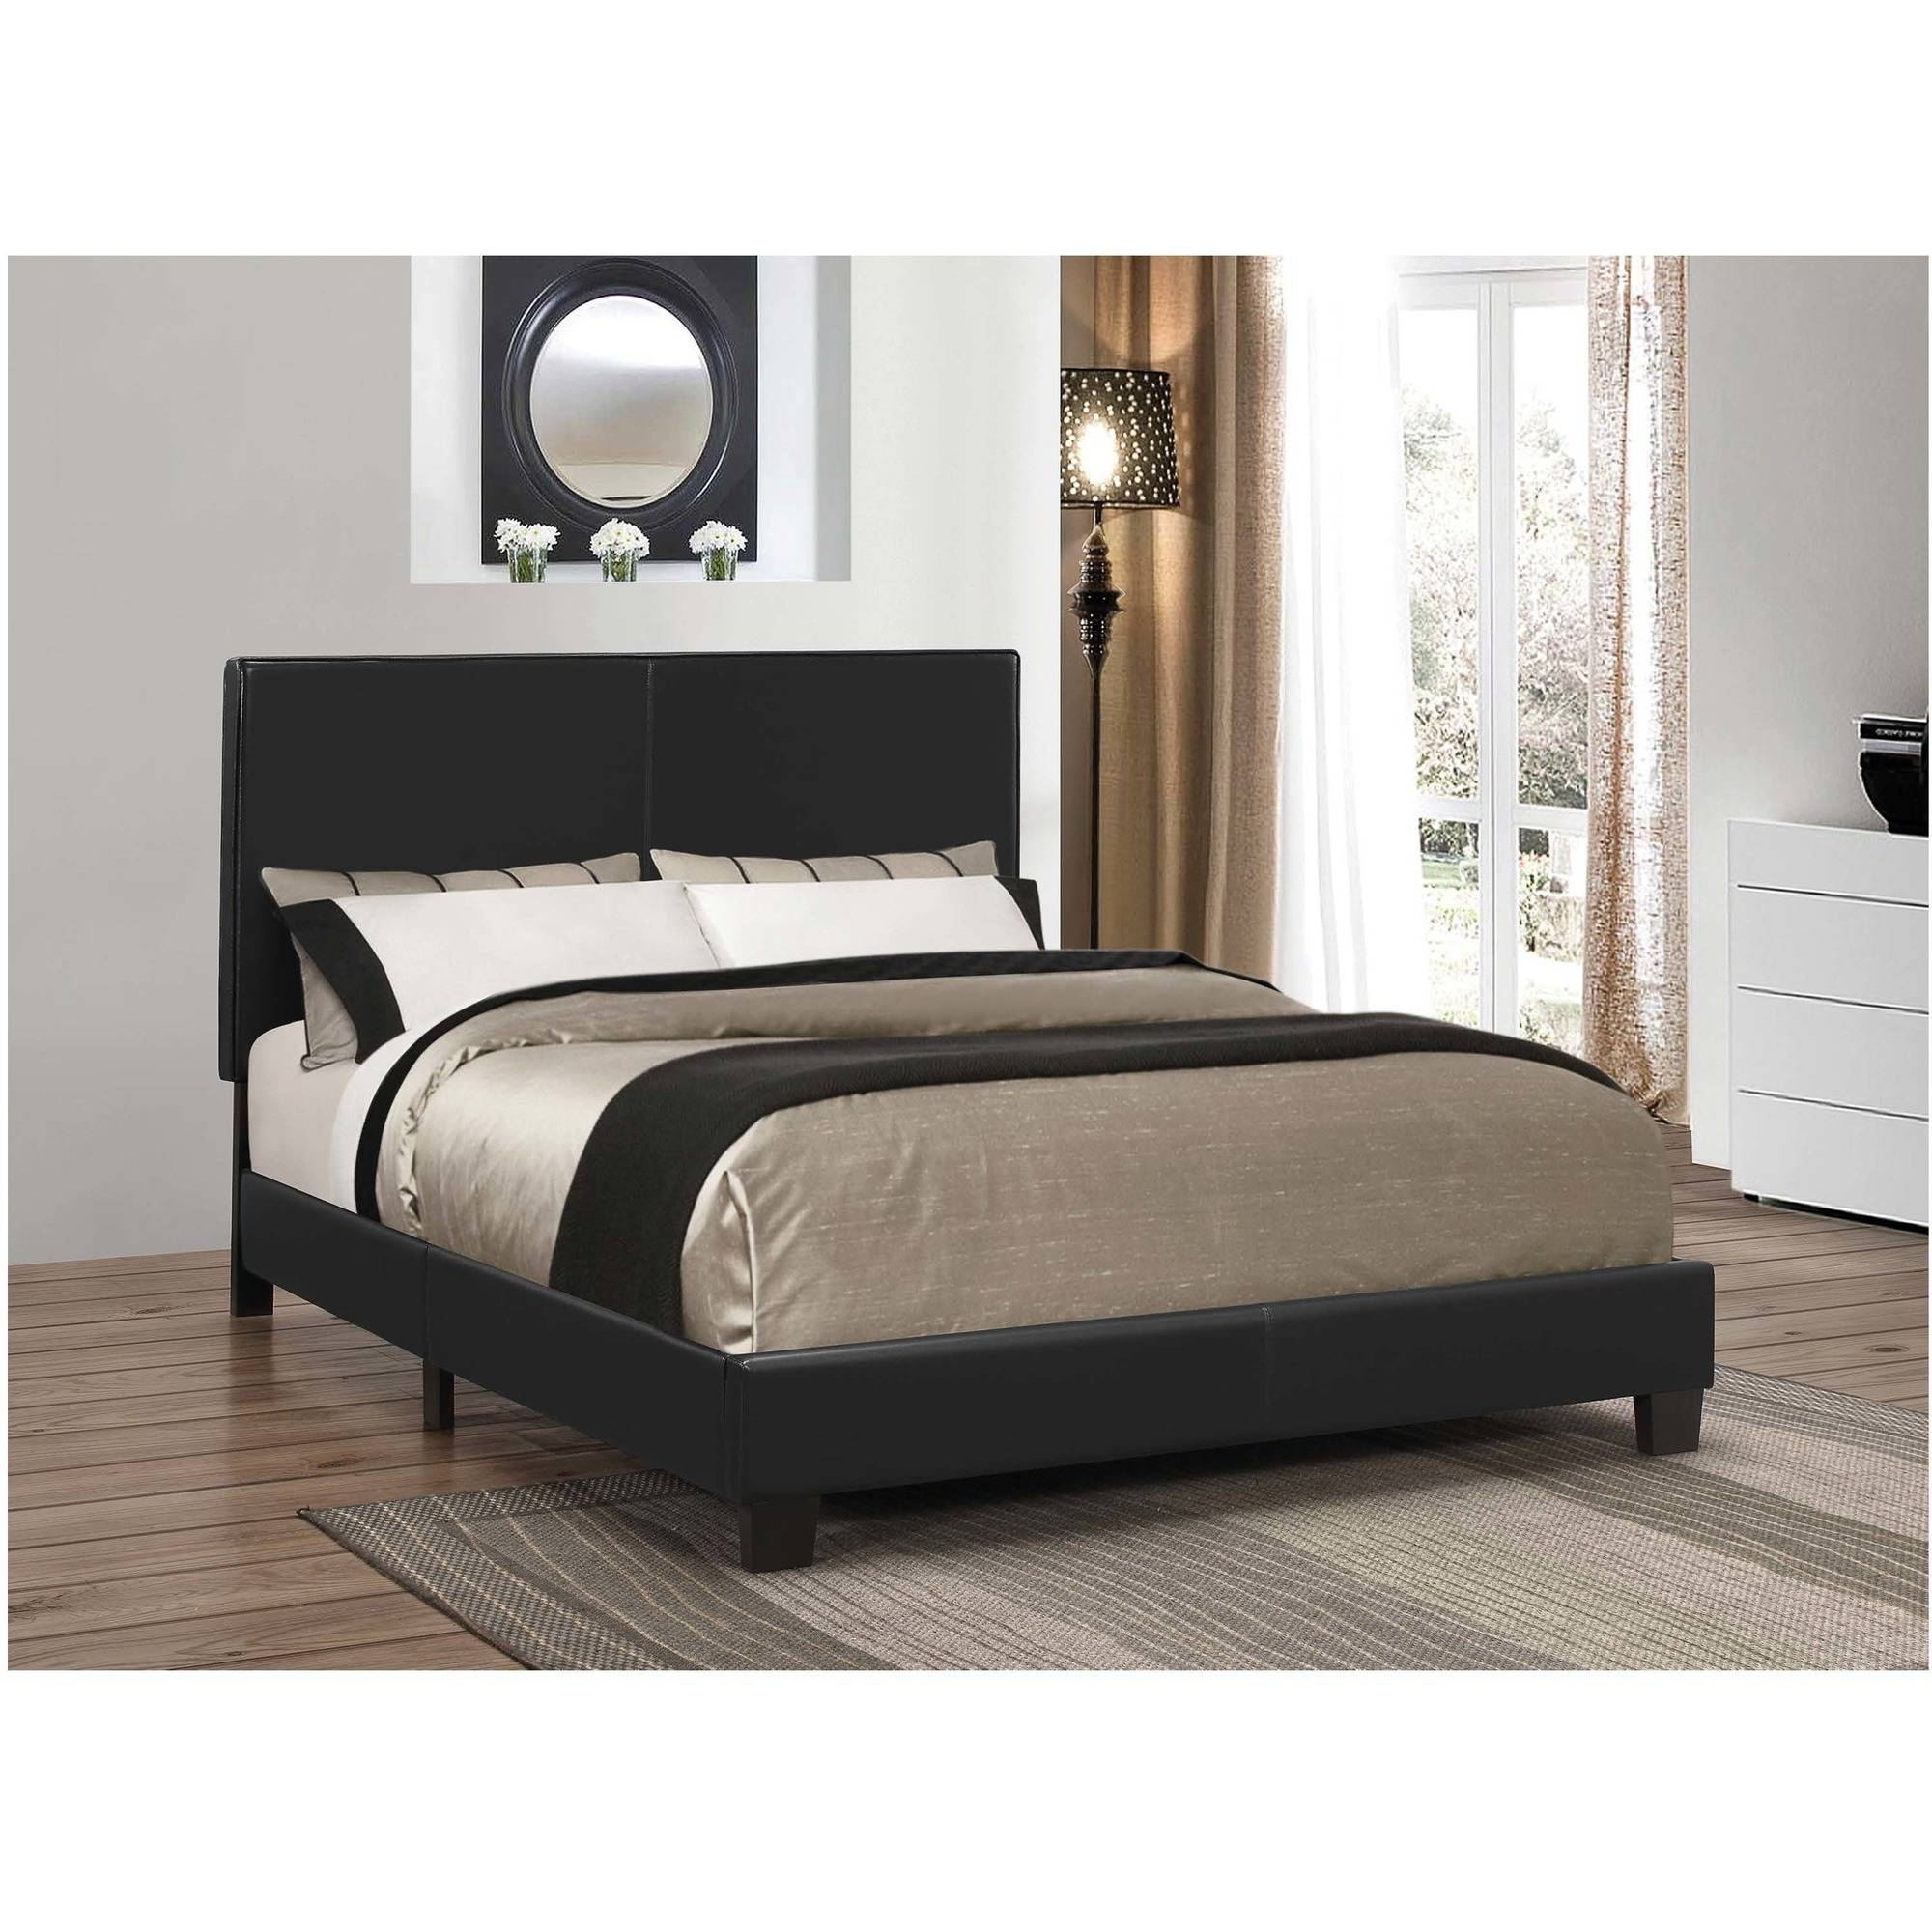 Coaster Company Mauve Upholstered Queen Bed, Black Leatherette